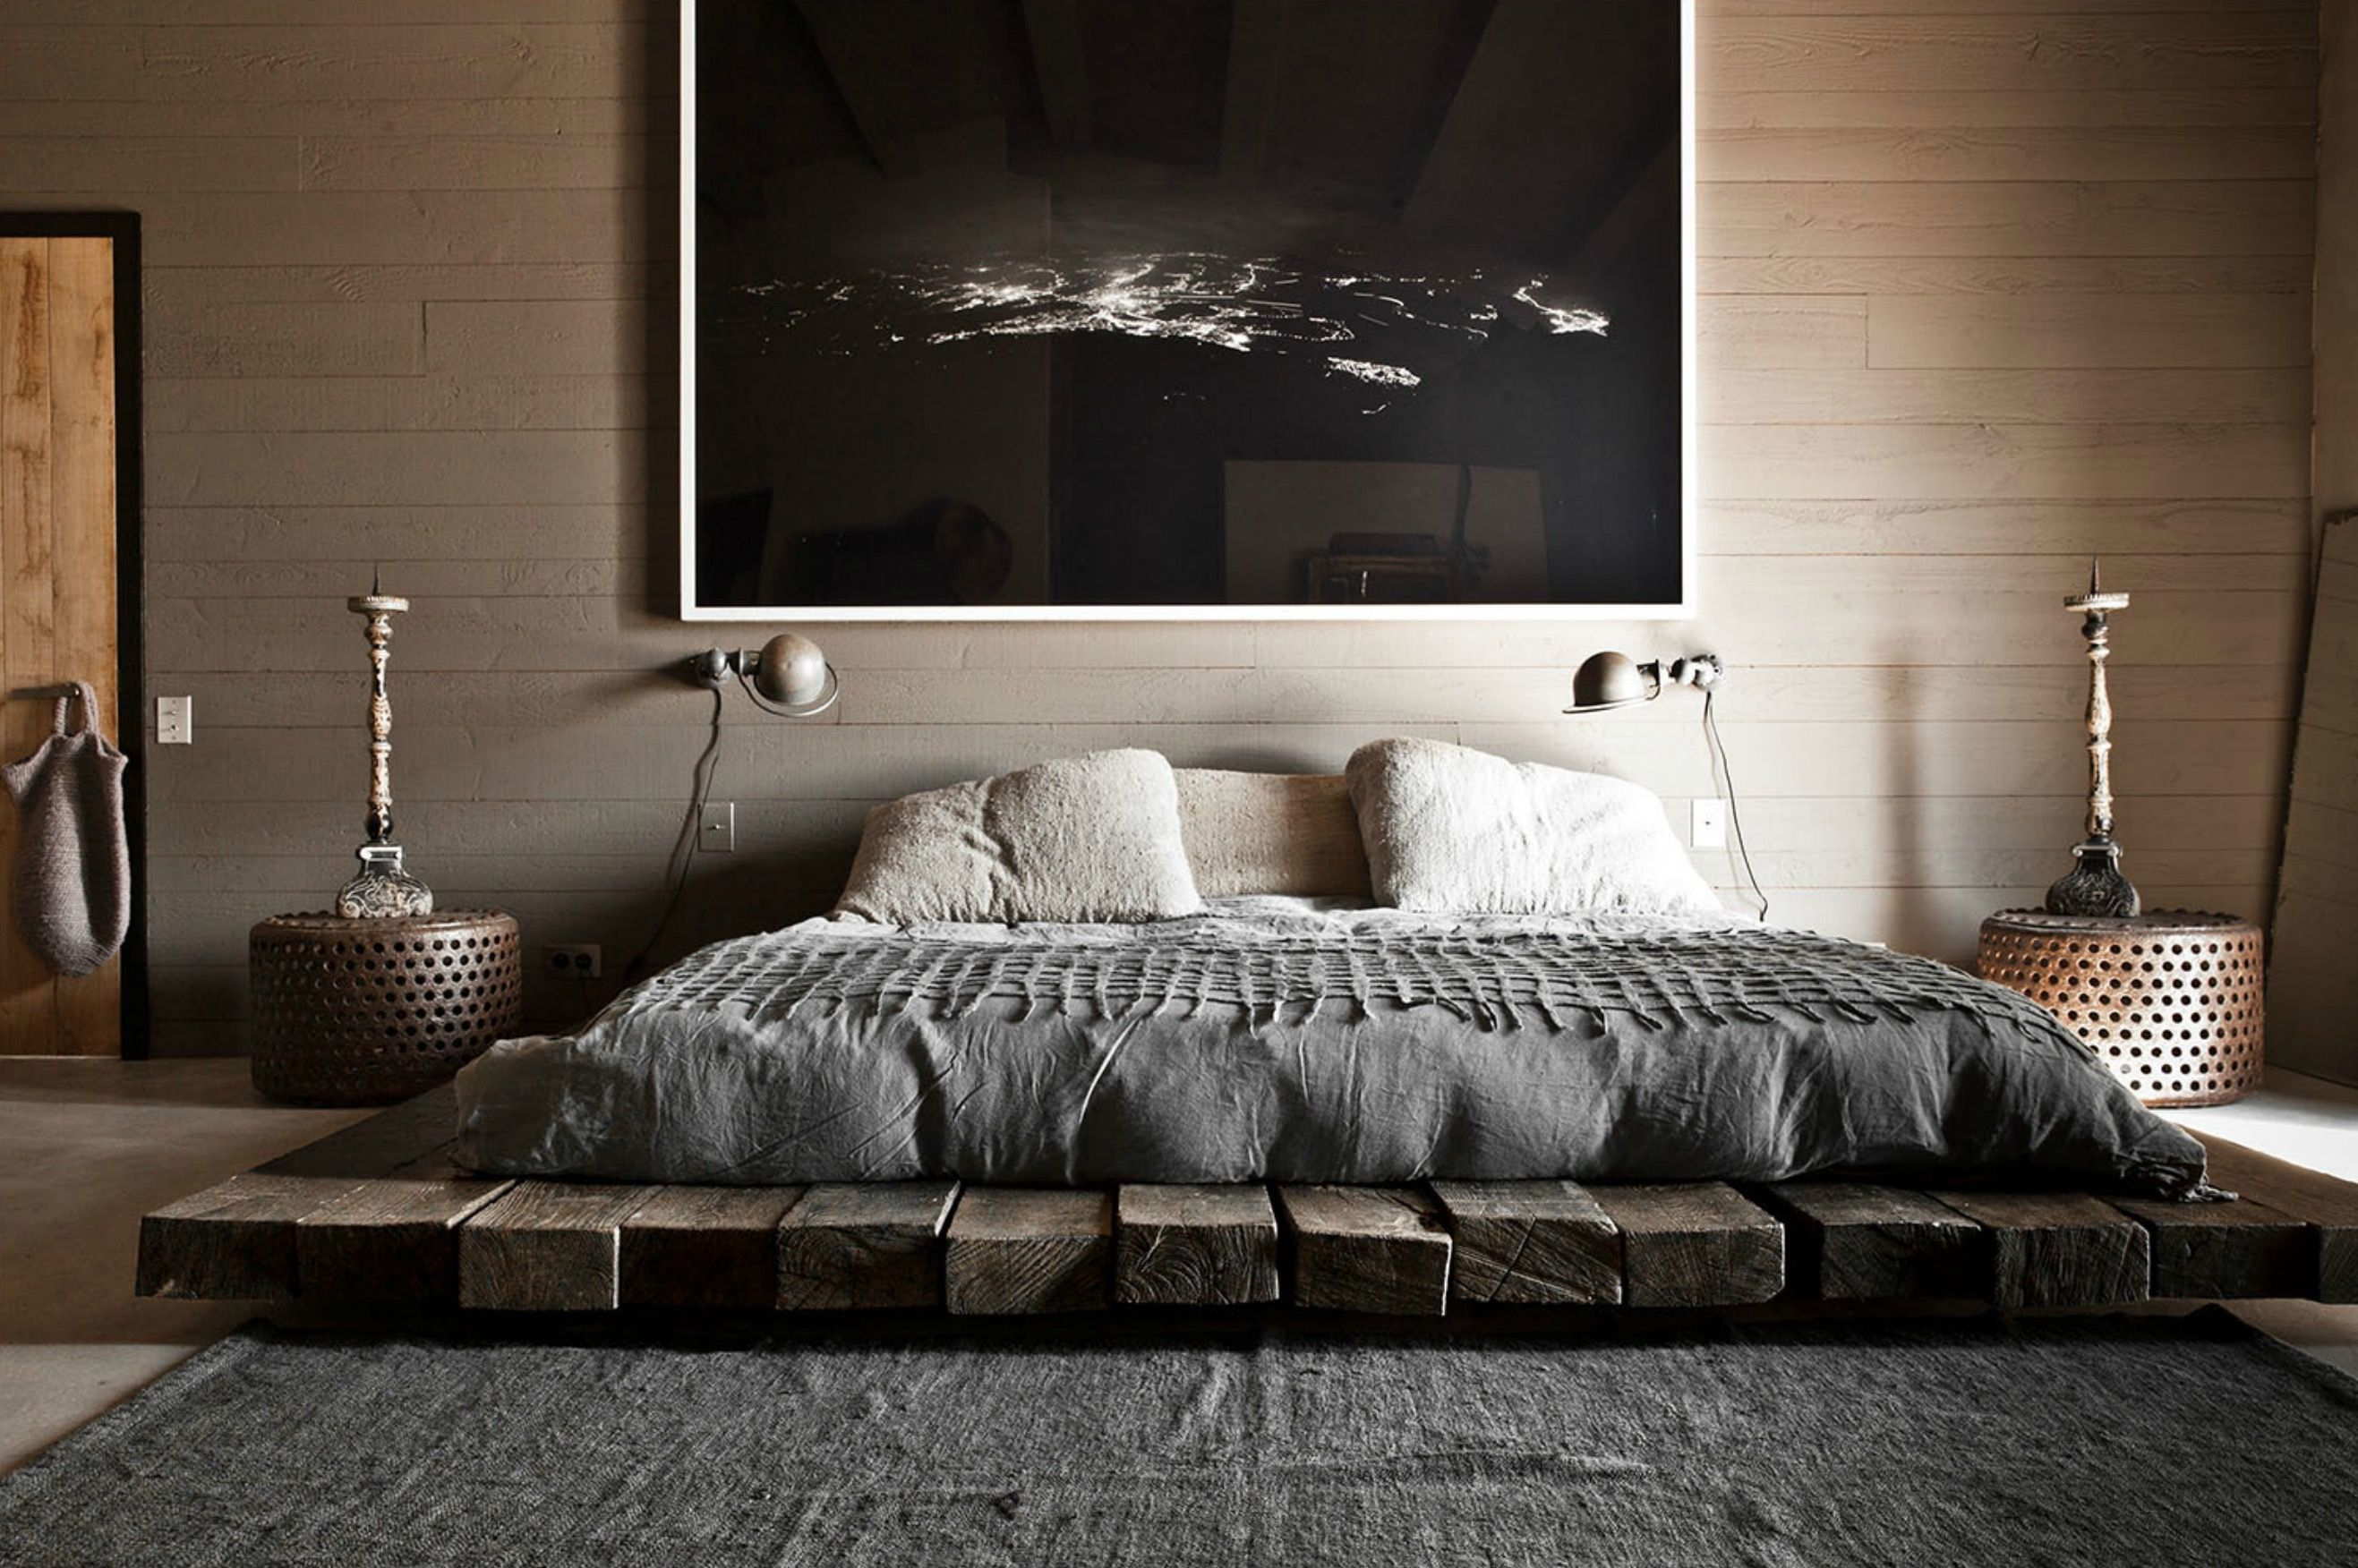 40 Low Height & Floor Bed Designs That Will Make You